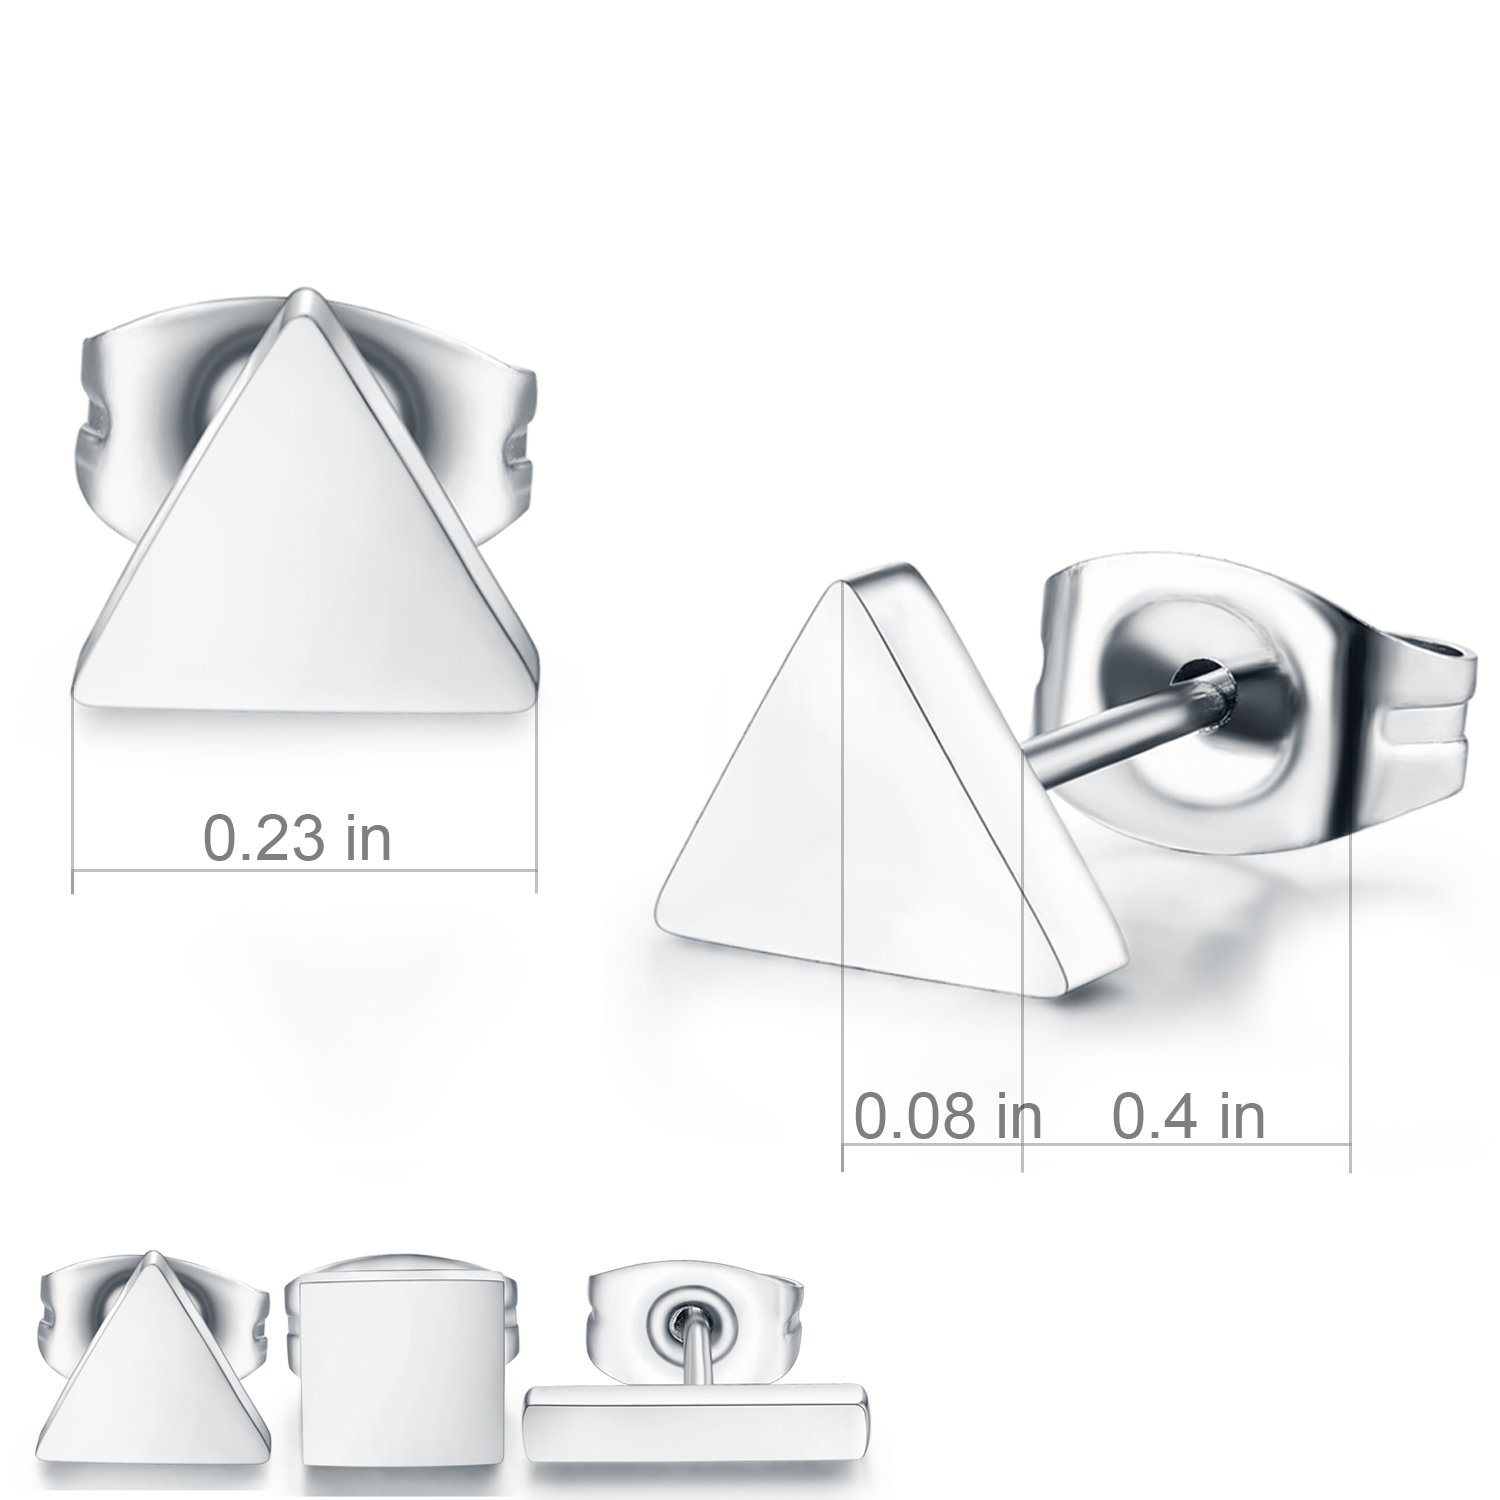 SPINEX 3 Pairs Silver Stud Earring Set Pierced (Rectangle, Square, Triangle) by SPINEX (Image #3)